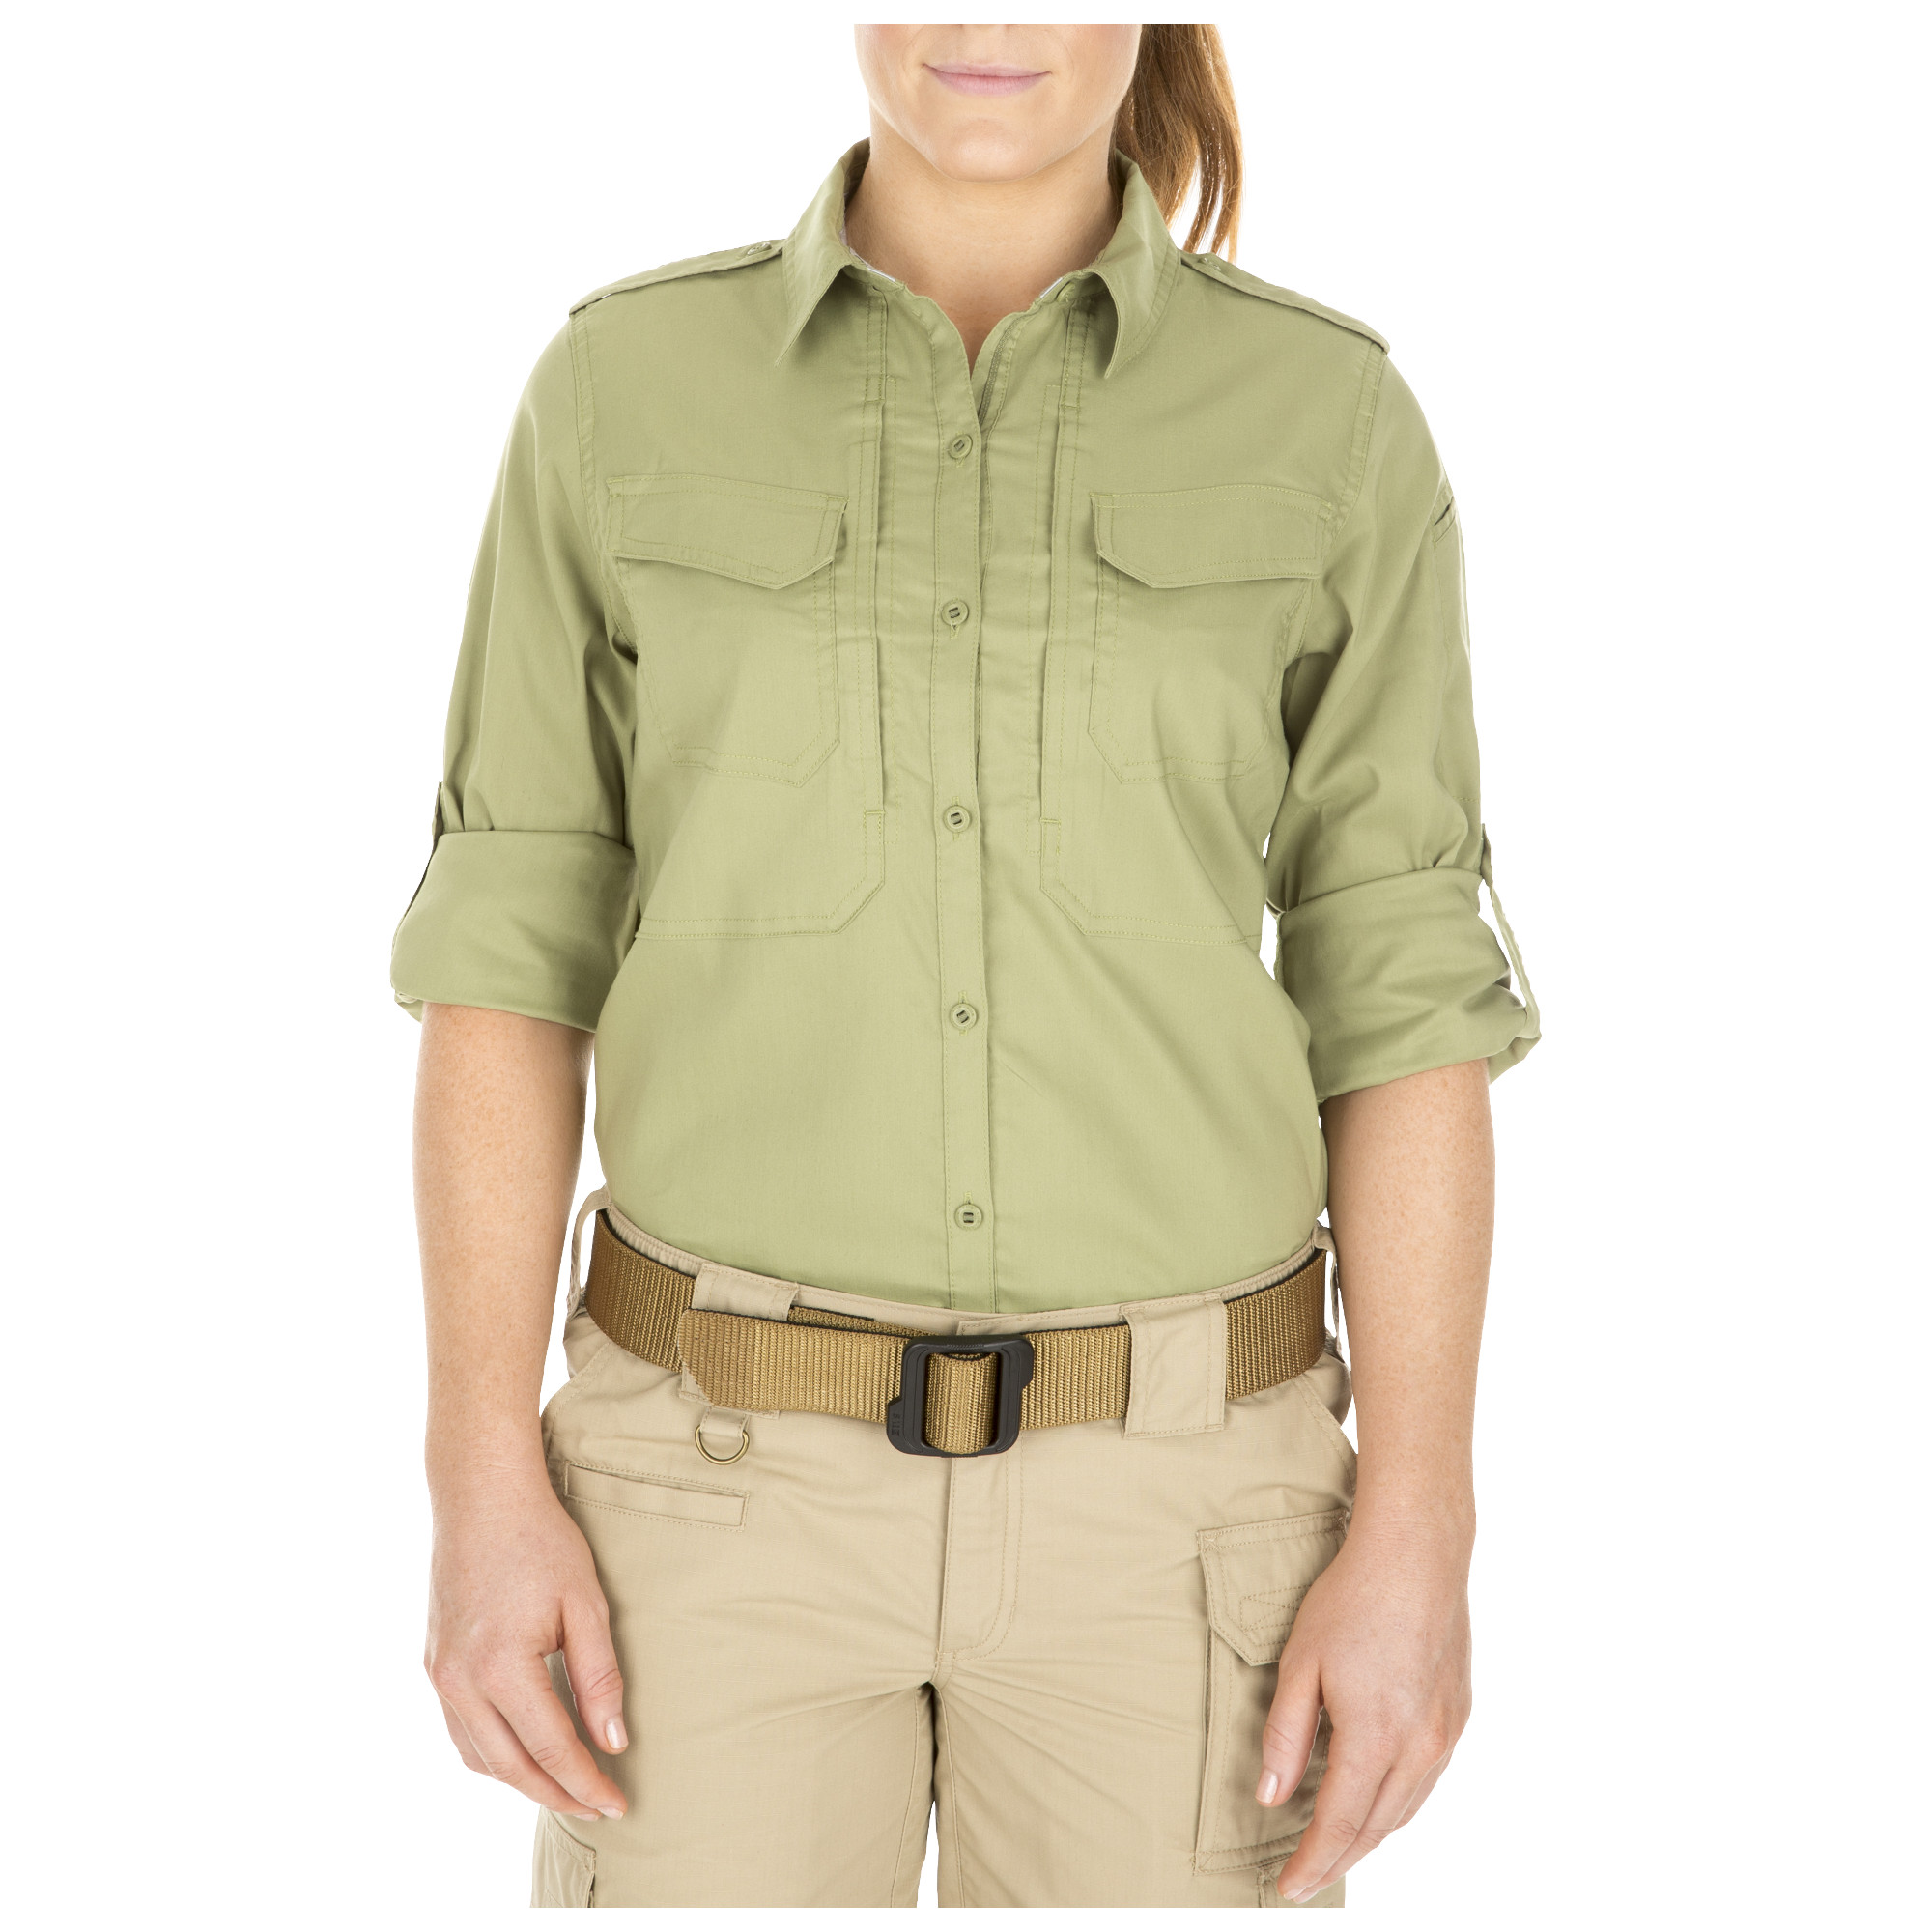 5.11 Tactical Women's Spitfire Shooting Shirt (Green) thumbnail